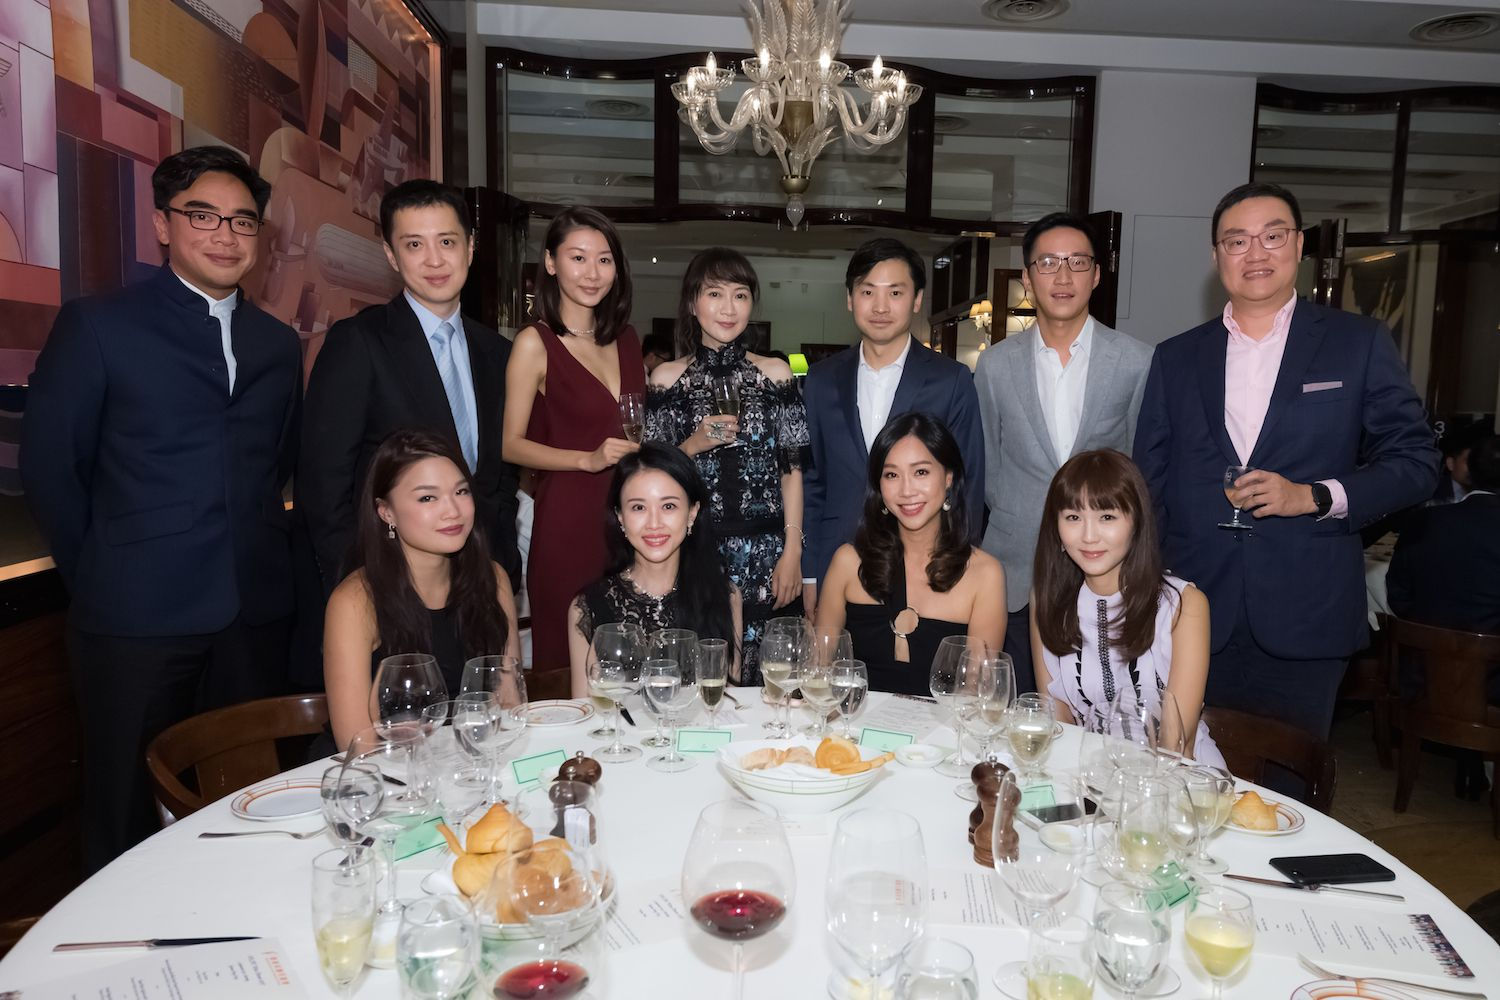 Standing: Ivan Ting, Jeff and Tobee Lau, Anna Hu, Honus Tandijono, Evan Chow and Wilson Pong. | Seated: Queenie Rosita Law, Jacqueline Chow, Angie Ting and Helena Pong